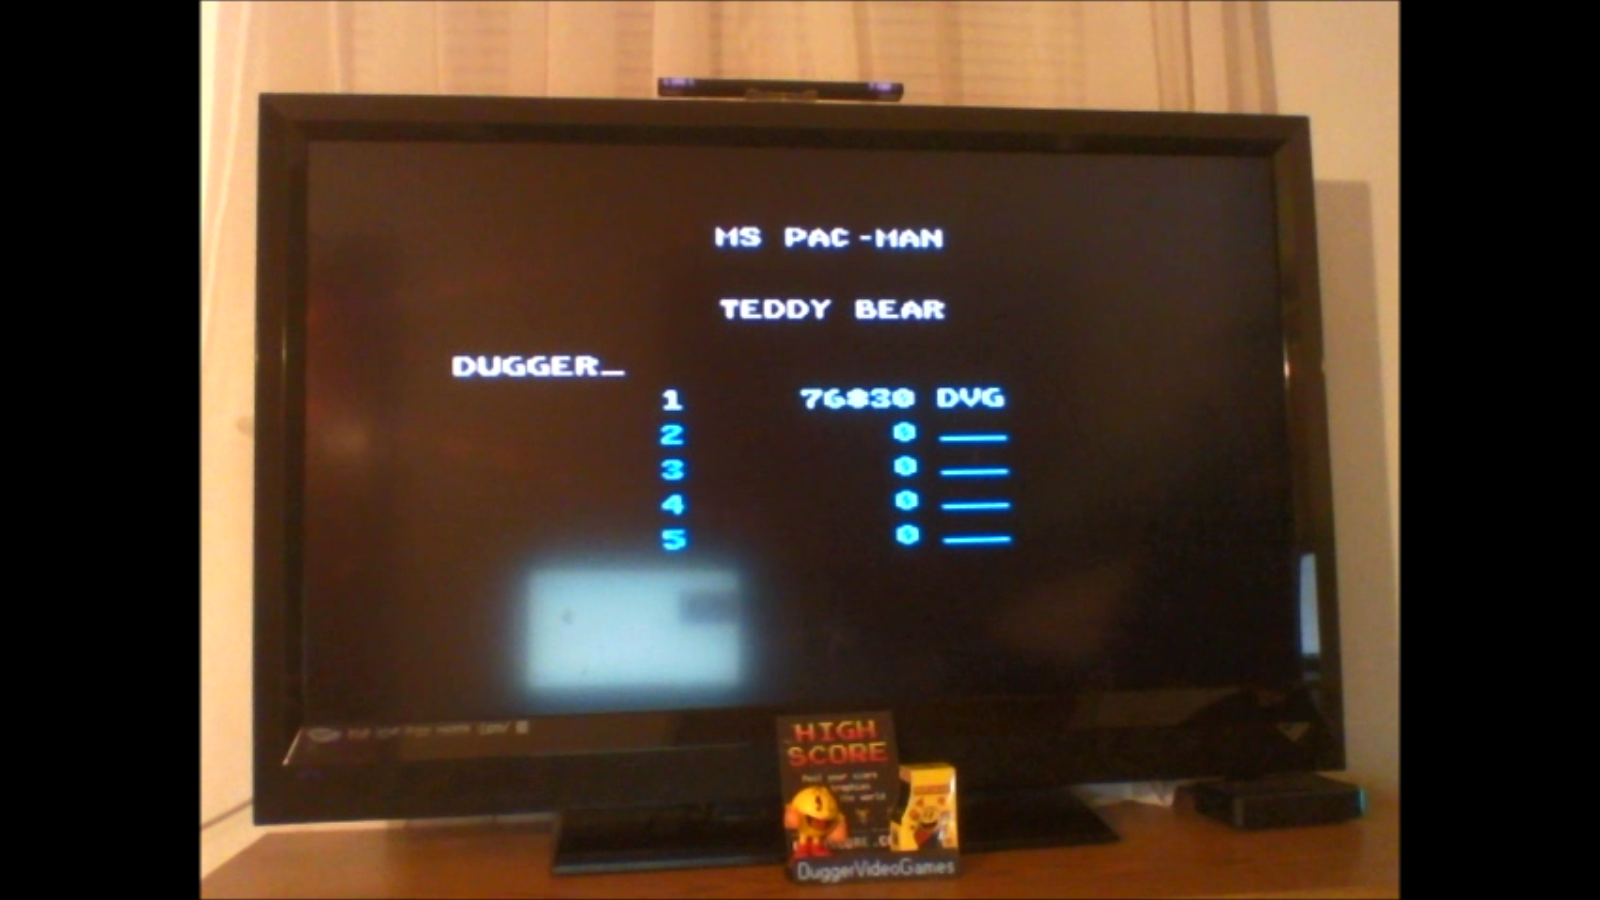 DuggerVideoGames: Ms. Pac-Man: Teddy Bear (Atari 7800 Emulated) 76,830 points on 2016-12-21 18:11:32